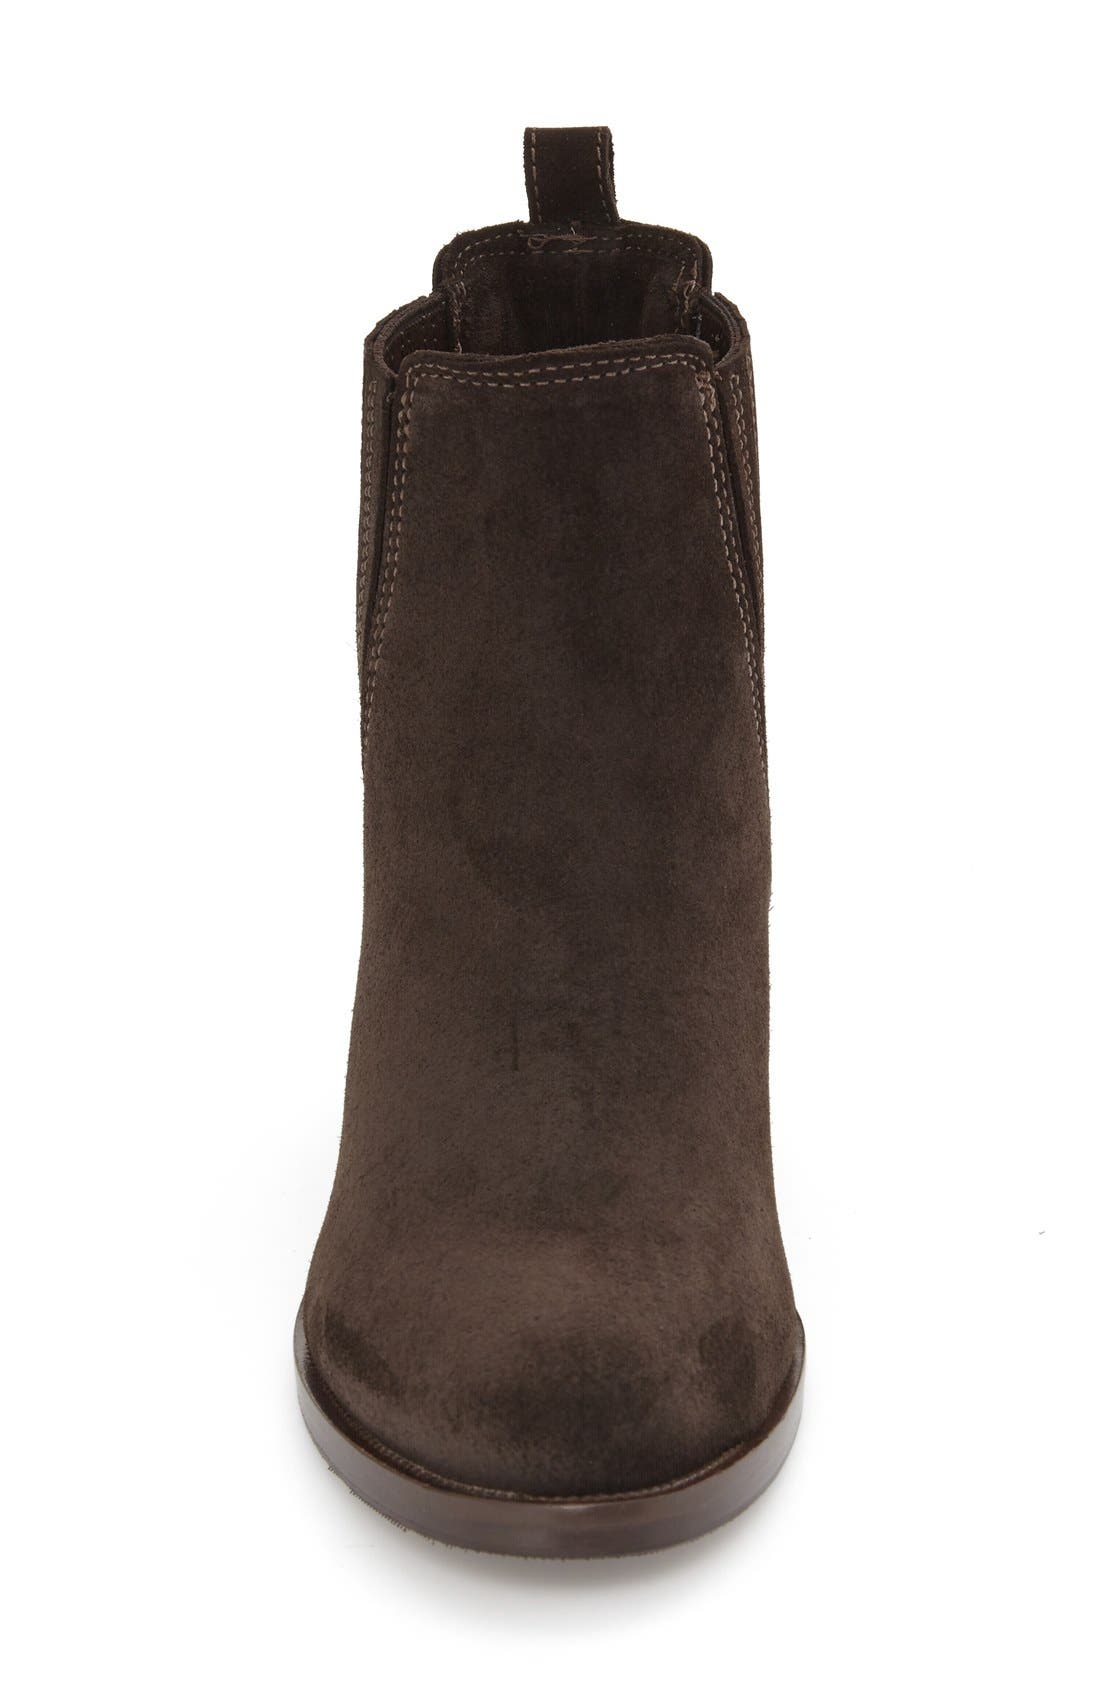 Prince Waterproof Bootie,                             Alternate thumbnail 3, color,                             Brown Suede